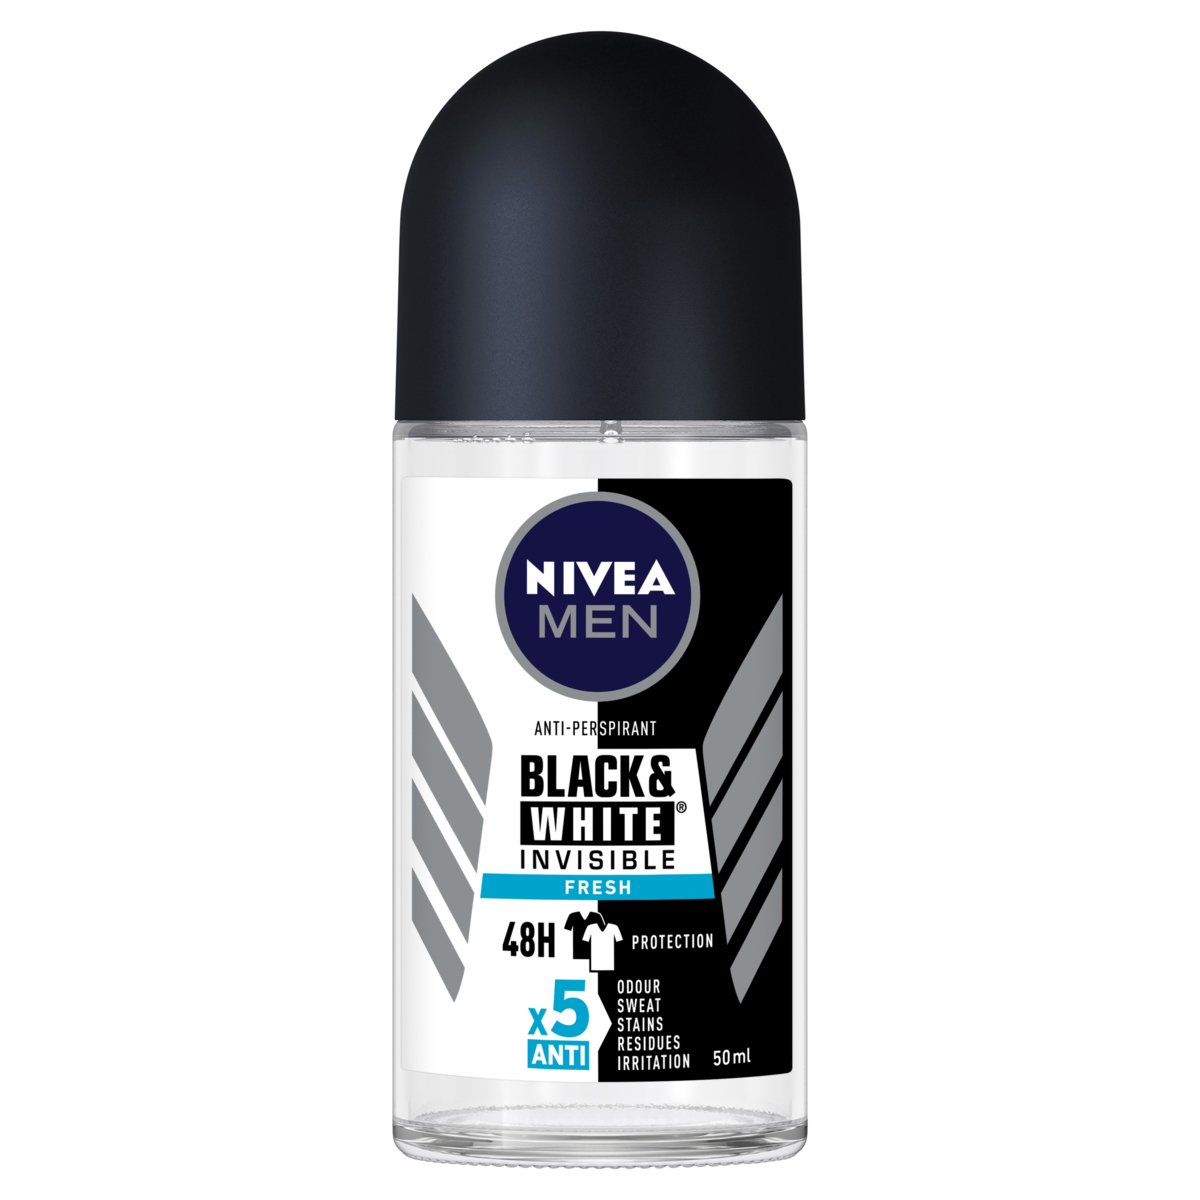 NIVEA Invisible For Black Amp White Fresh Roll On Deodorant